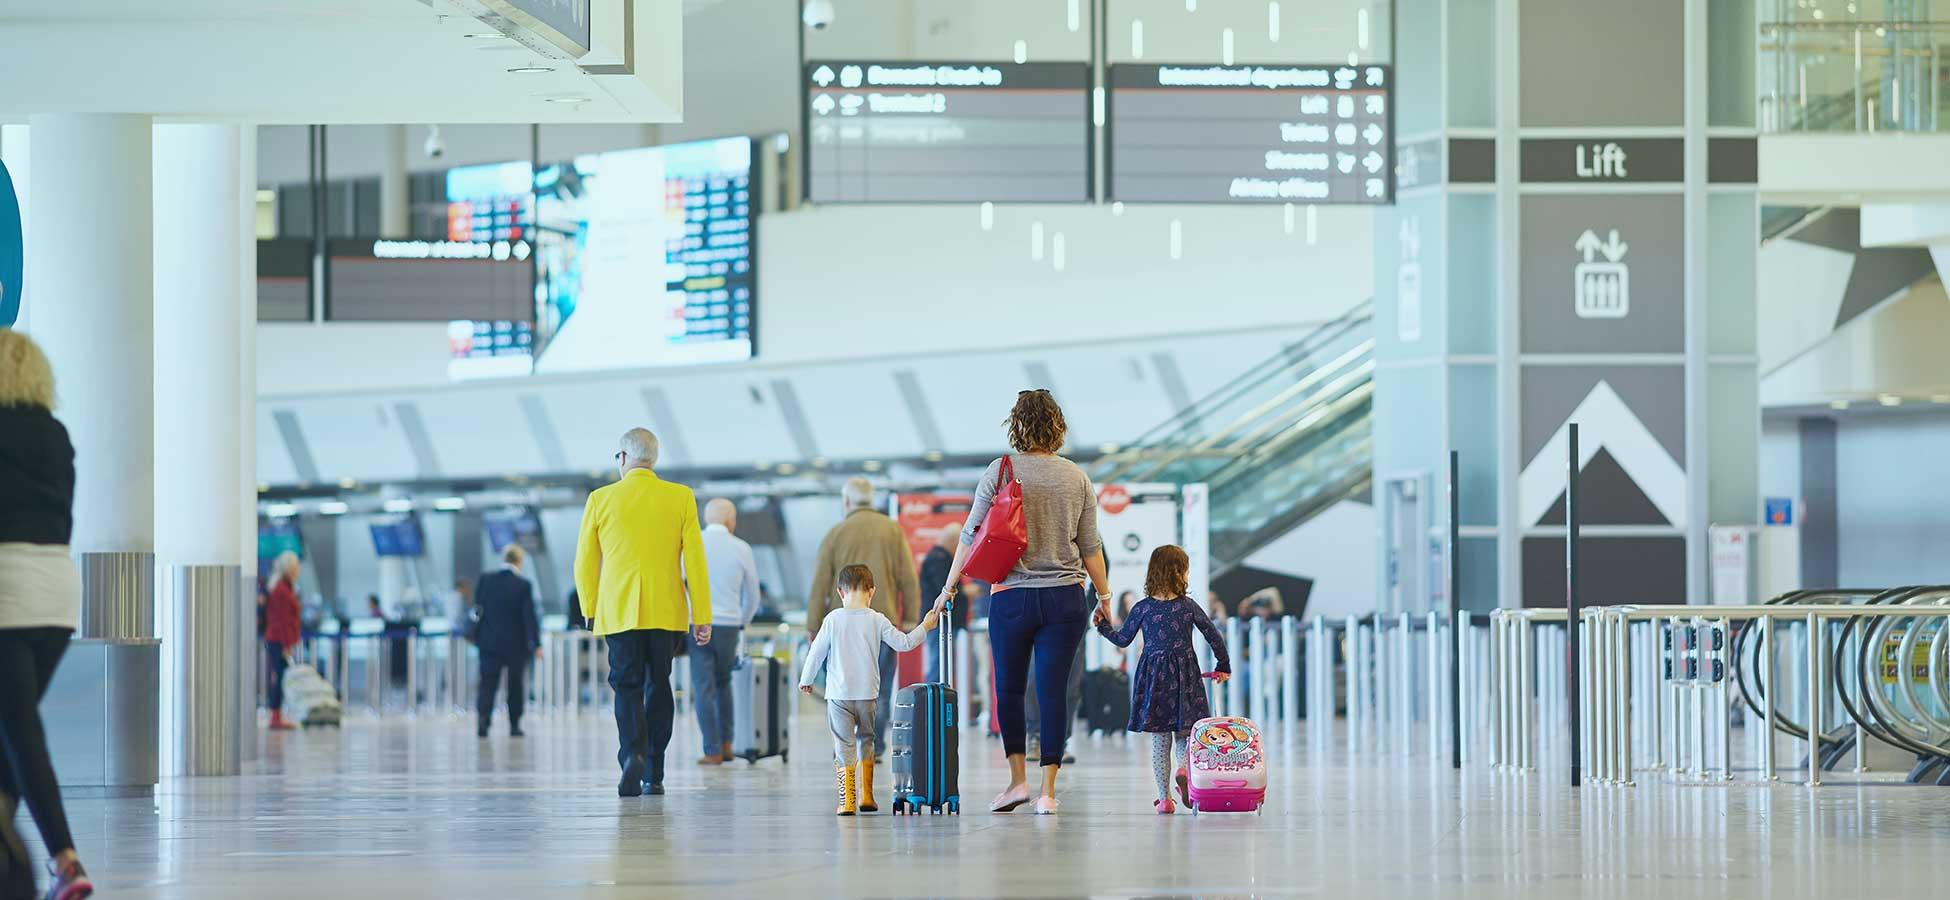 Perth Airport upgrades its Airport Management System in parthership with Veovo